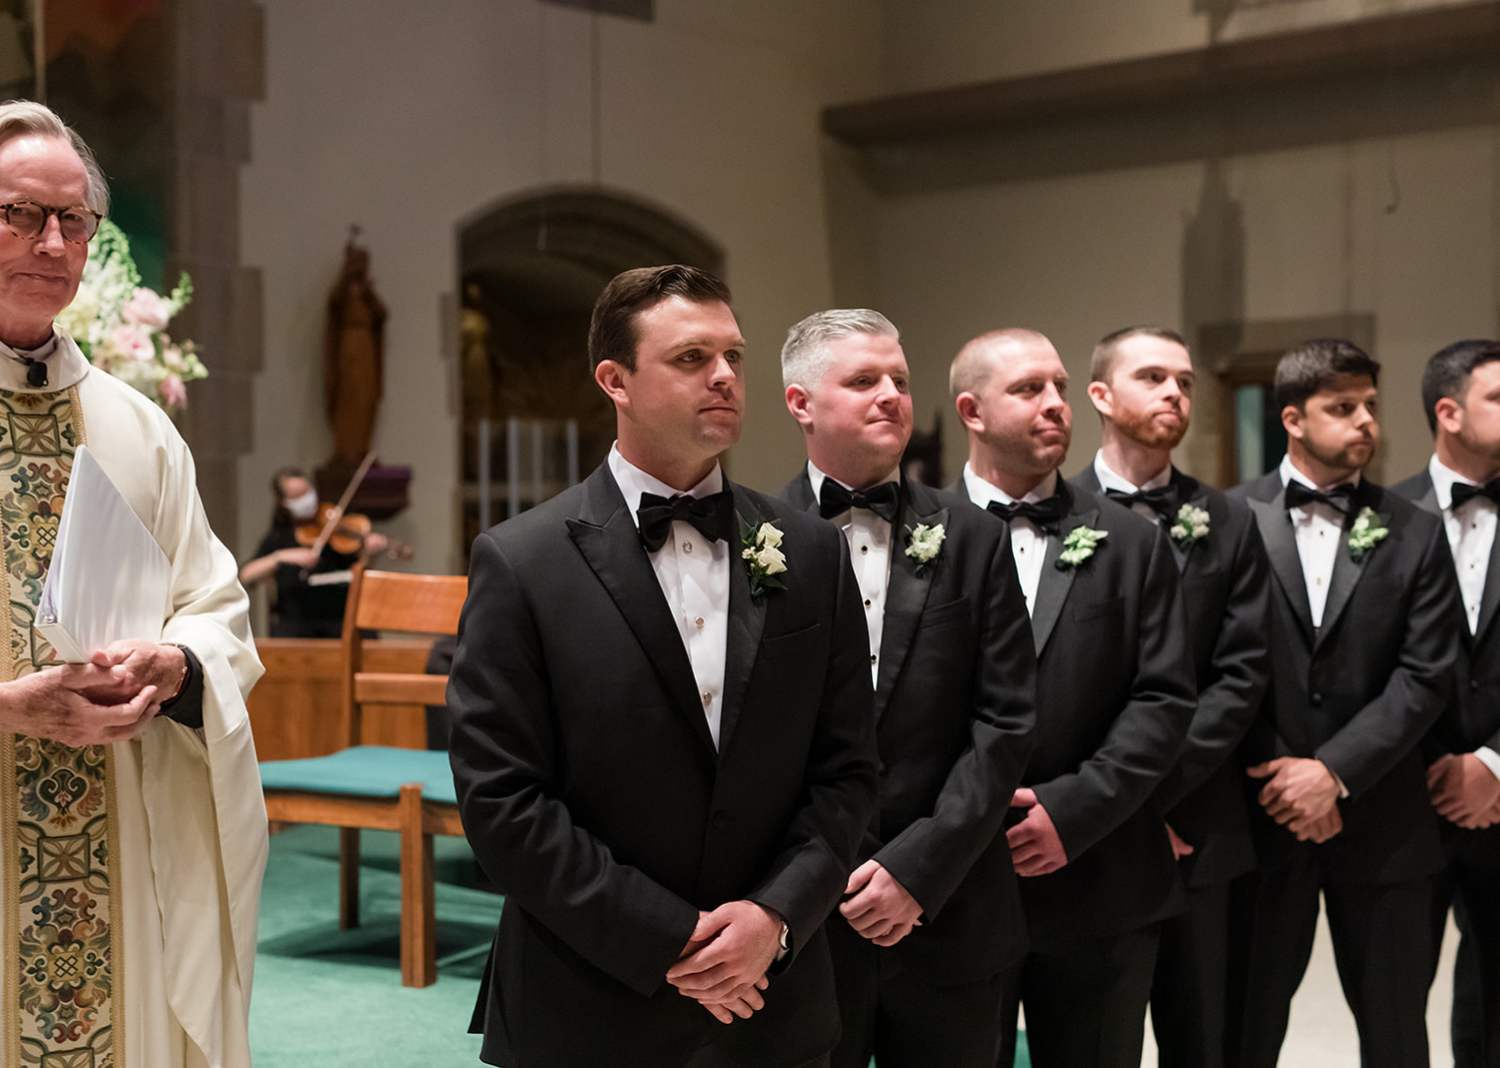 groom standing with his groomsmen waiting at the end of the aisle for his bride